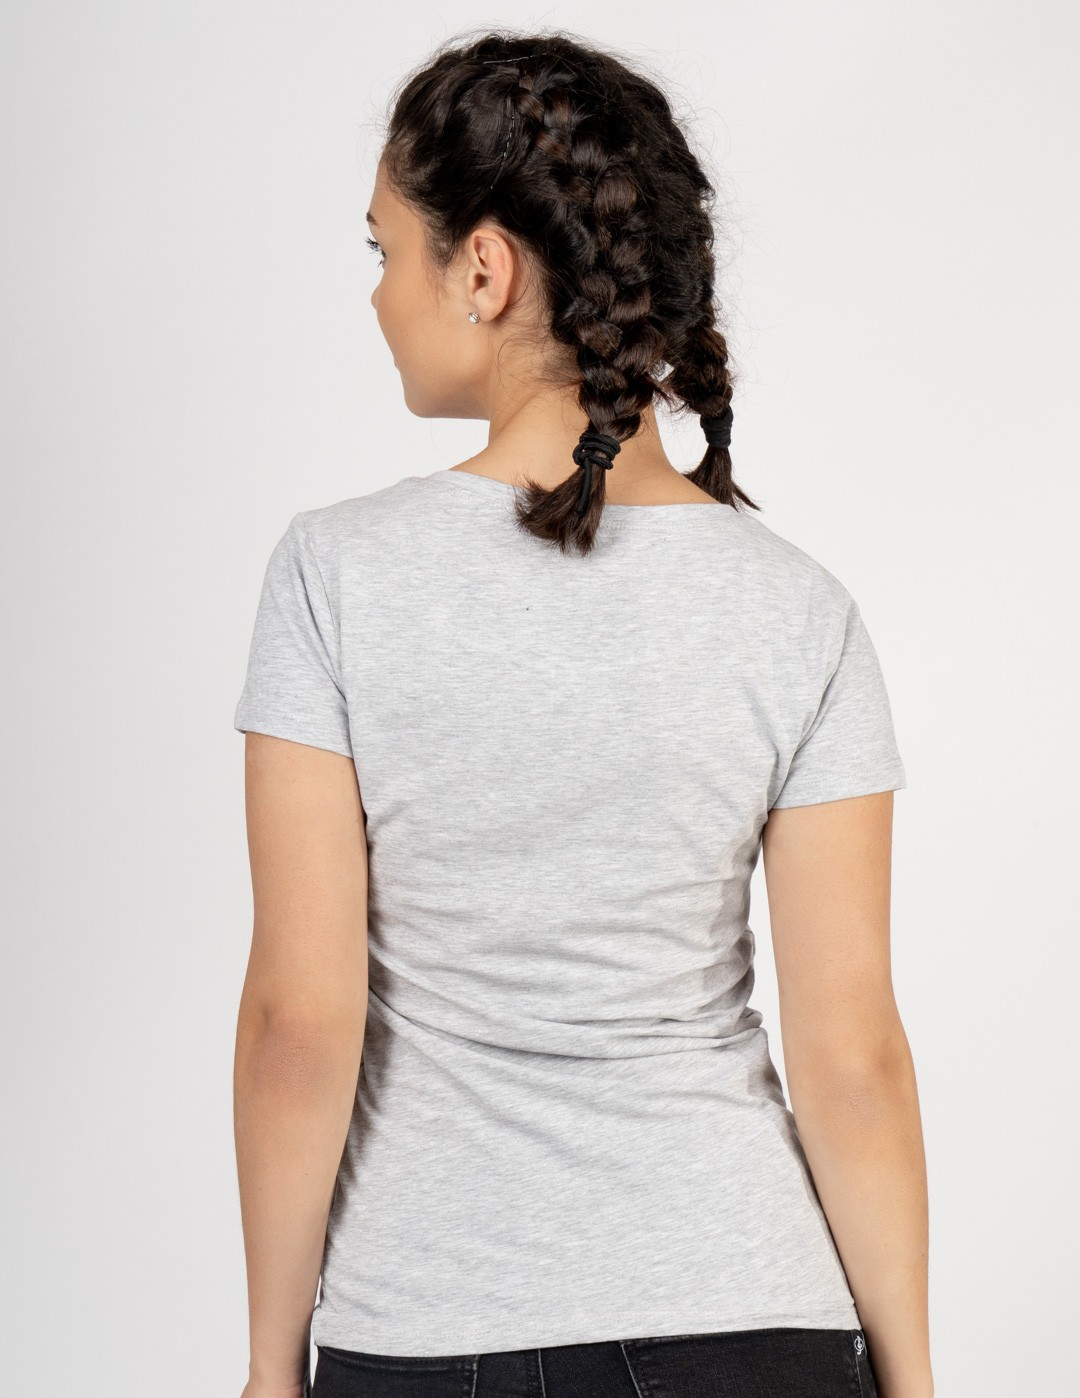 Women's T-Shirt NEON STREETS Collection Pink/Grey